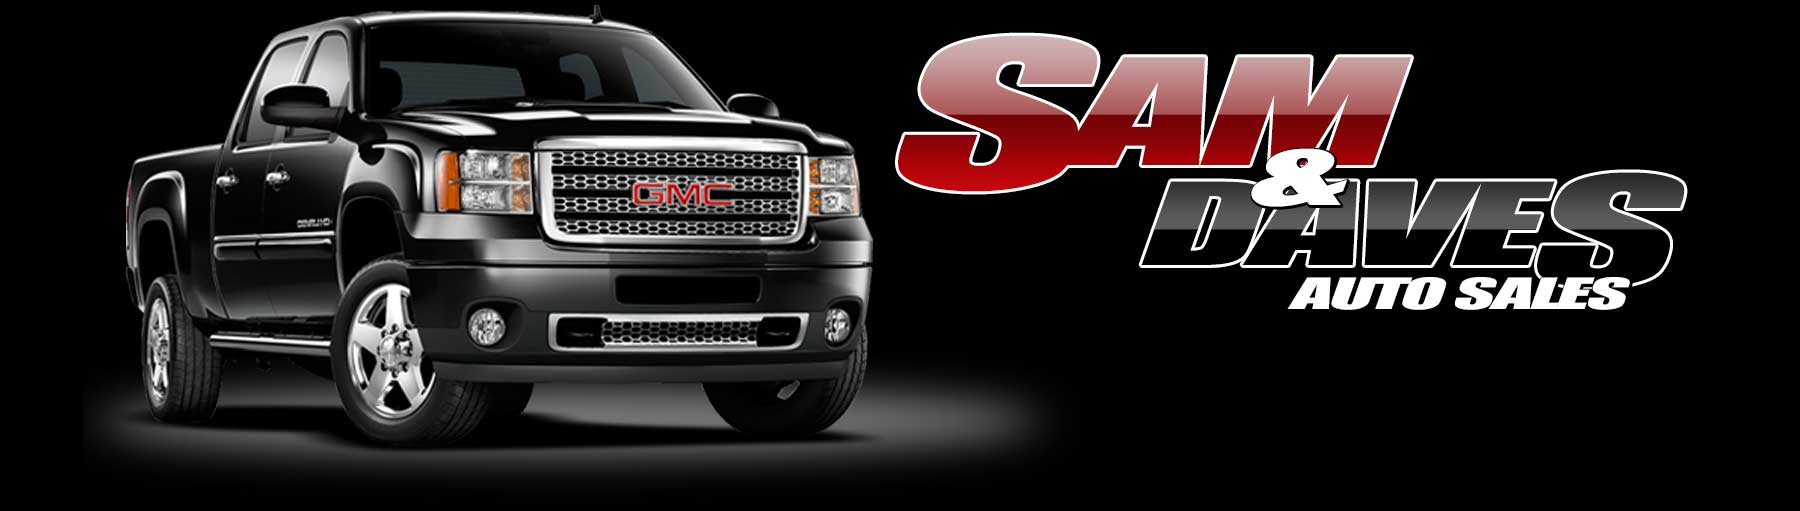 Daves Auto Sales >> Sam Daves Auto Sales Car Dealer In Asheville Nc